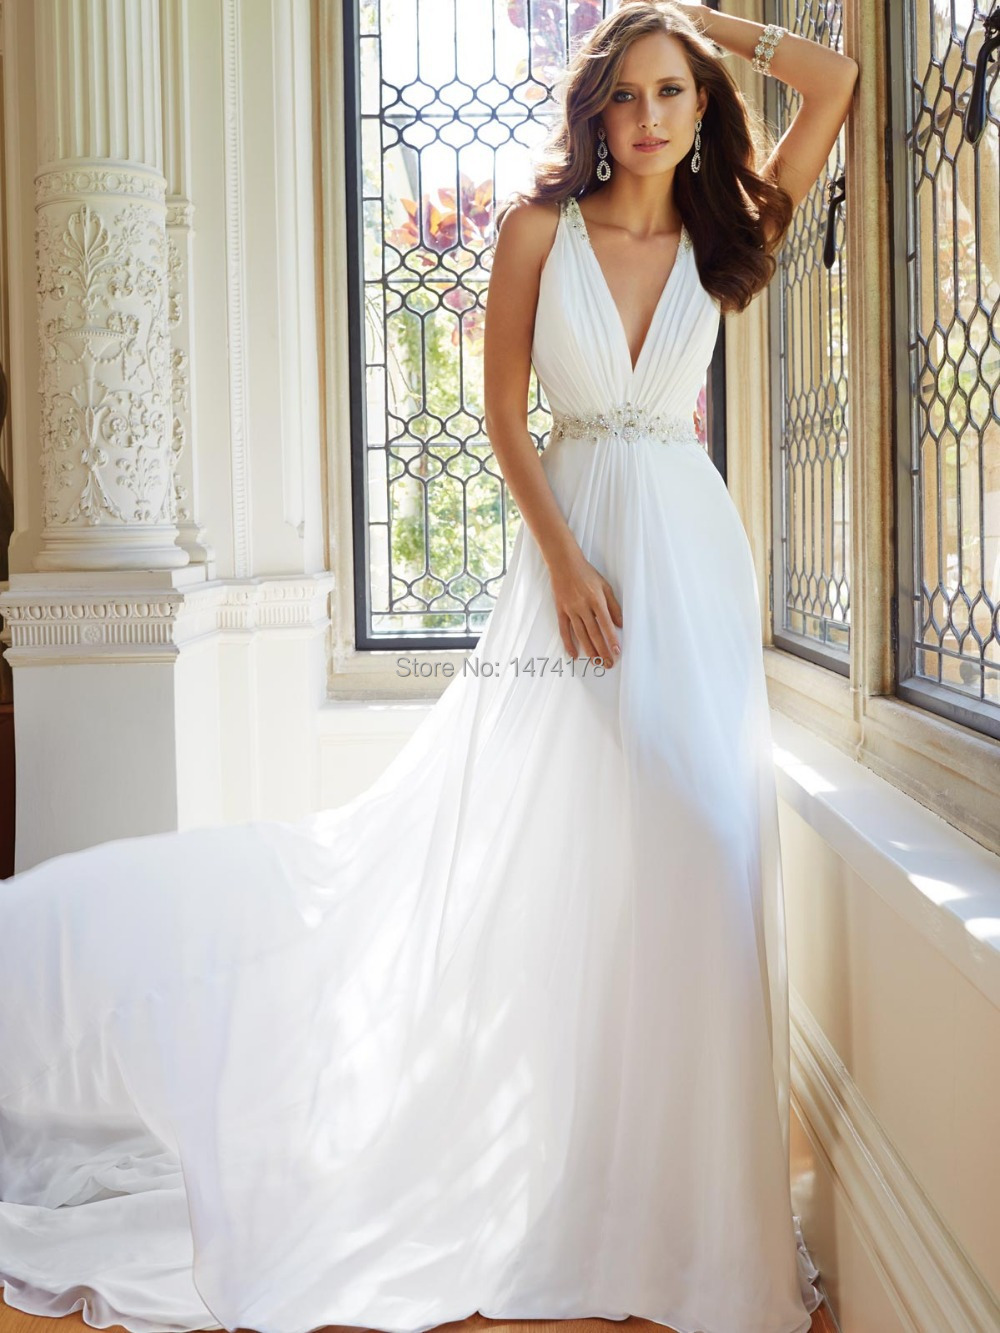 wedding dresses with plunging necklines plunging neckline wedding dress justin alexander gold wedding dress